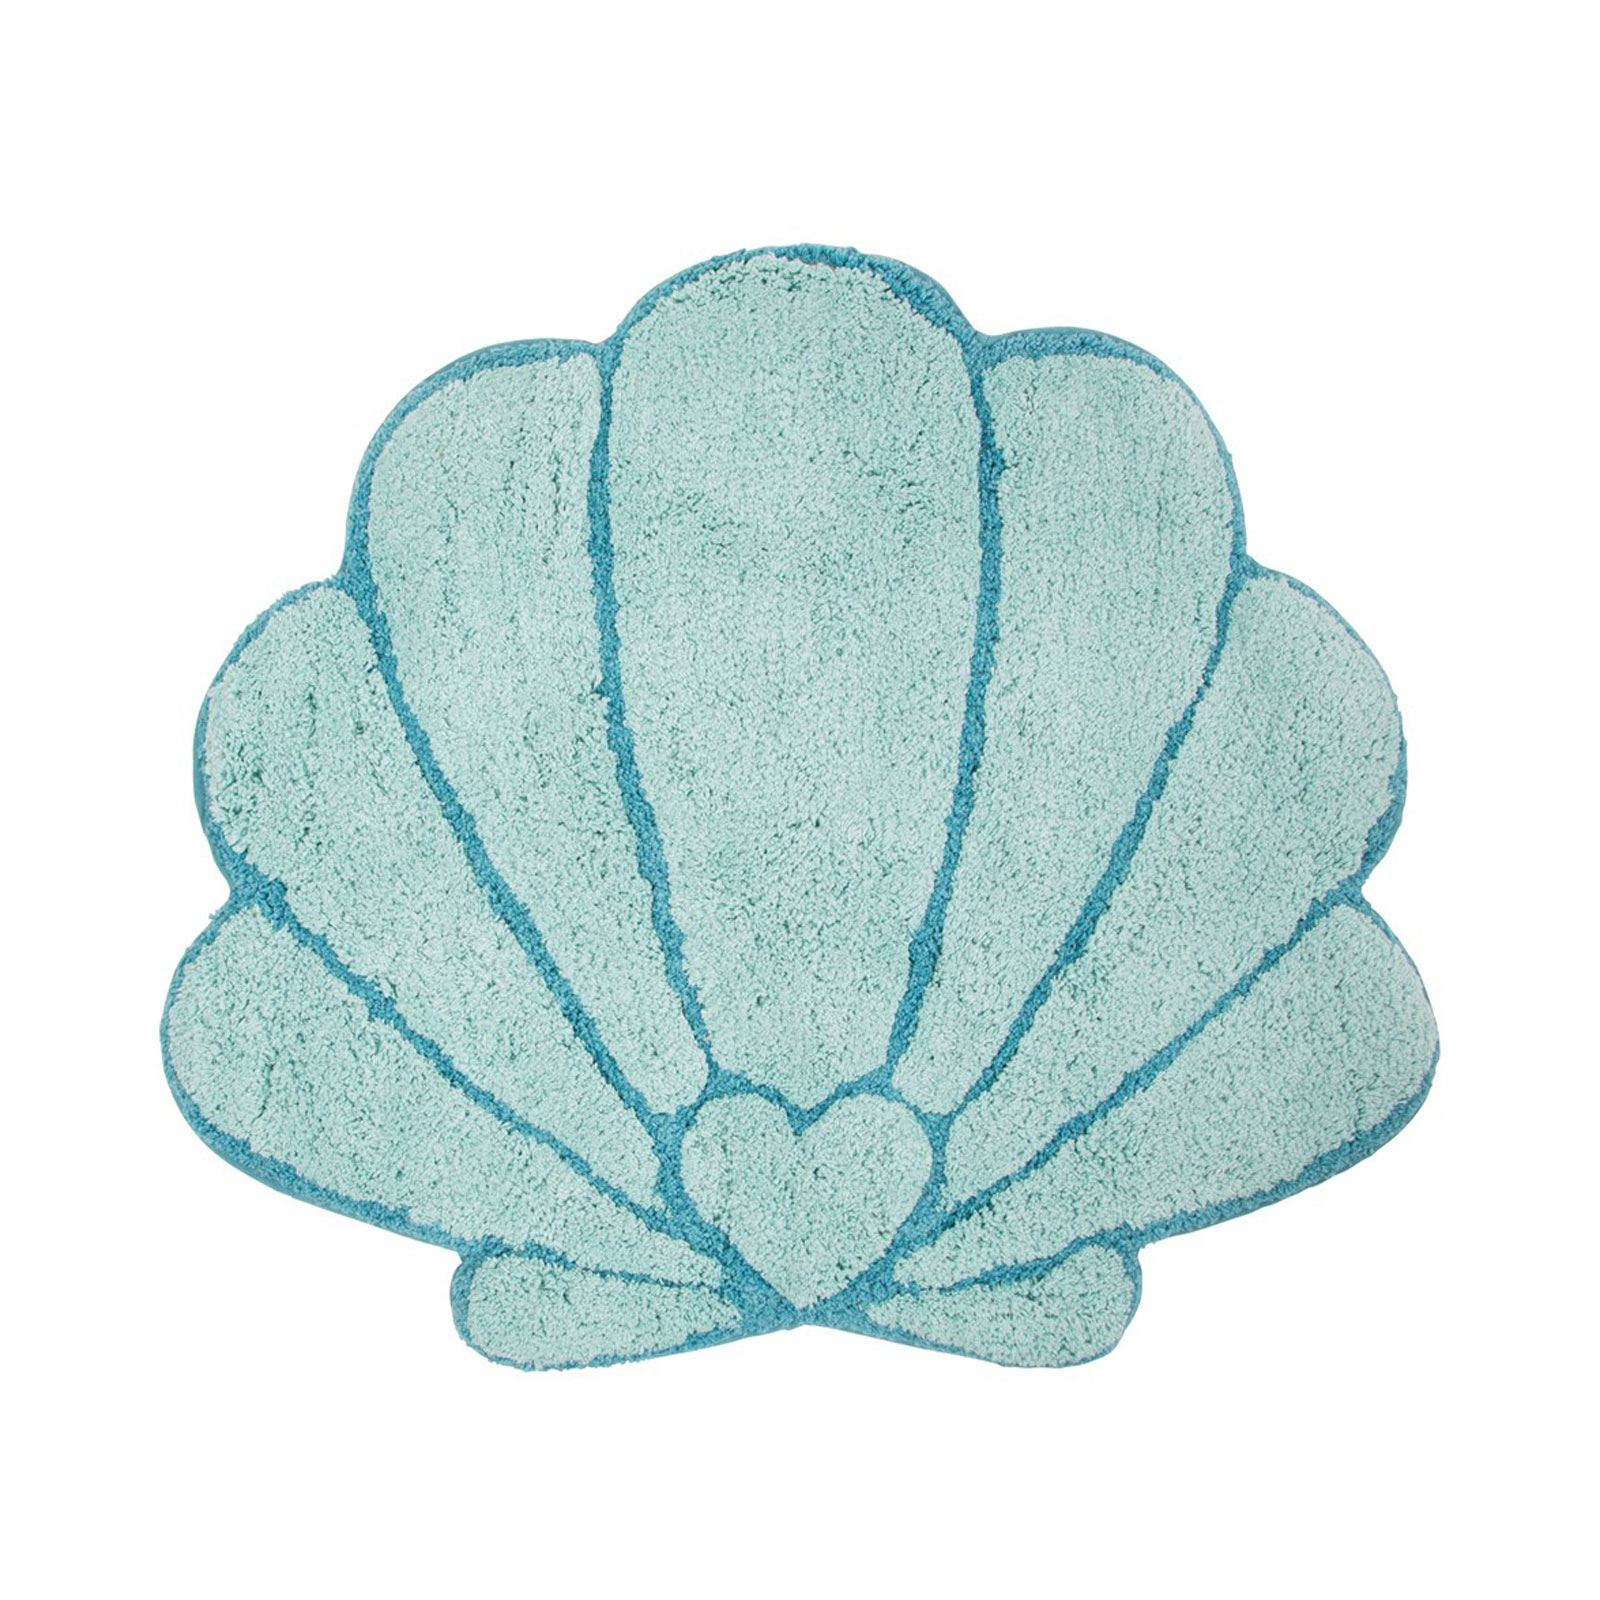 Details About MERMAID TREASURES SHELL FLOOR SHAPED RUG MAT CHILDRENS ROOM  SOFT 100% COTTON